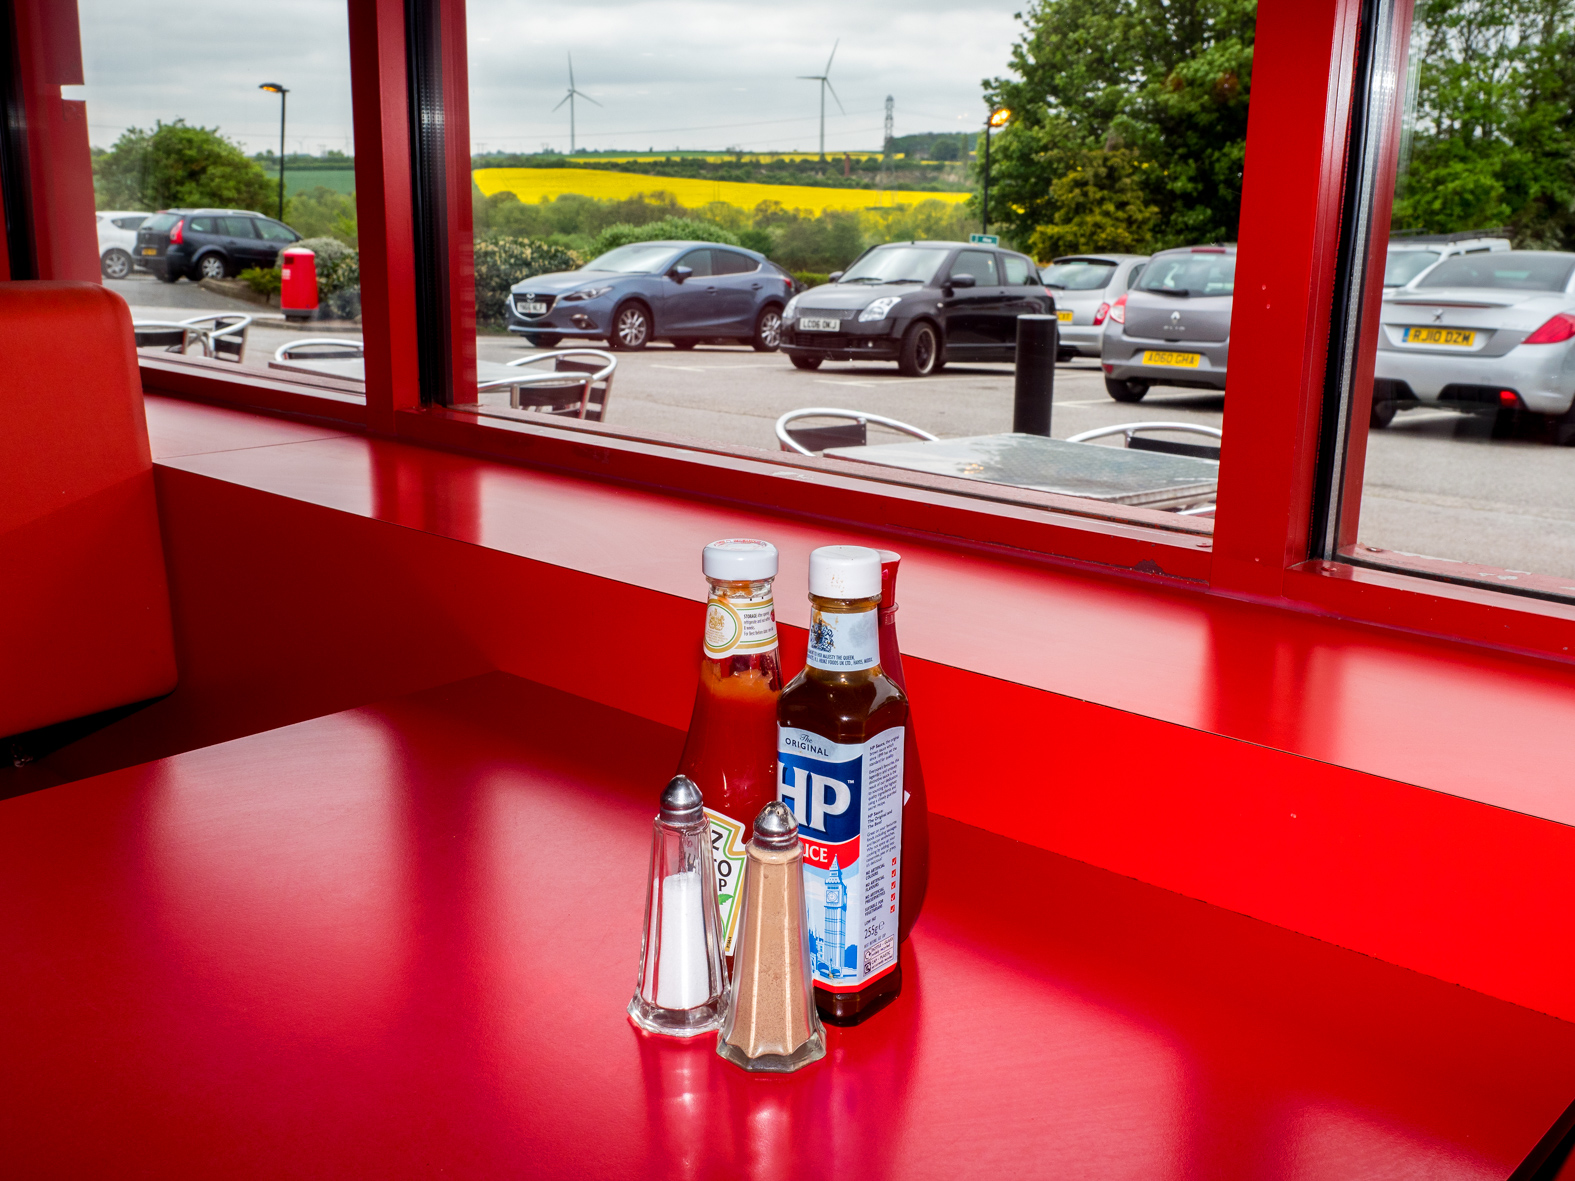 Condiments on the table at Little Chef. Doncaster, South Yorkshire.